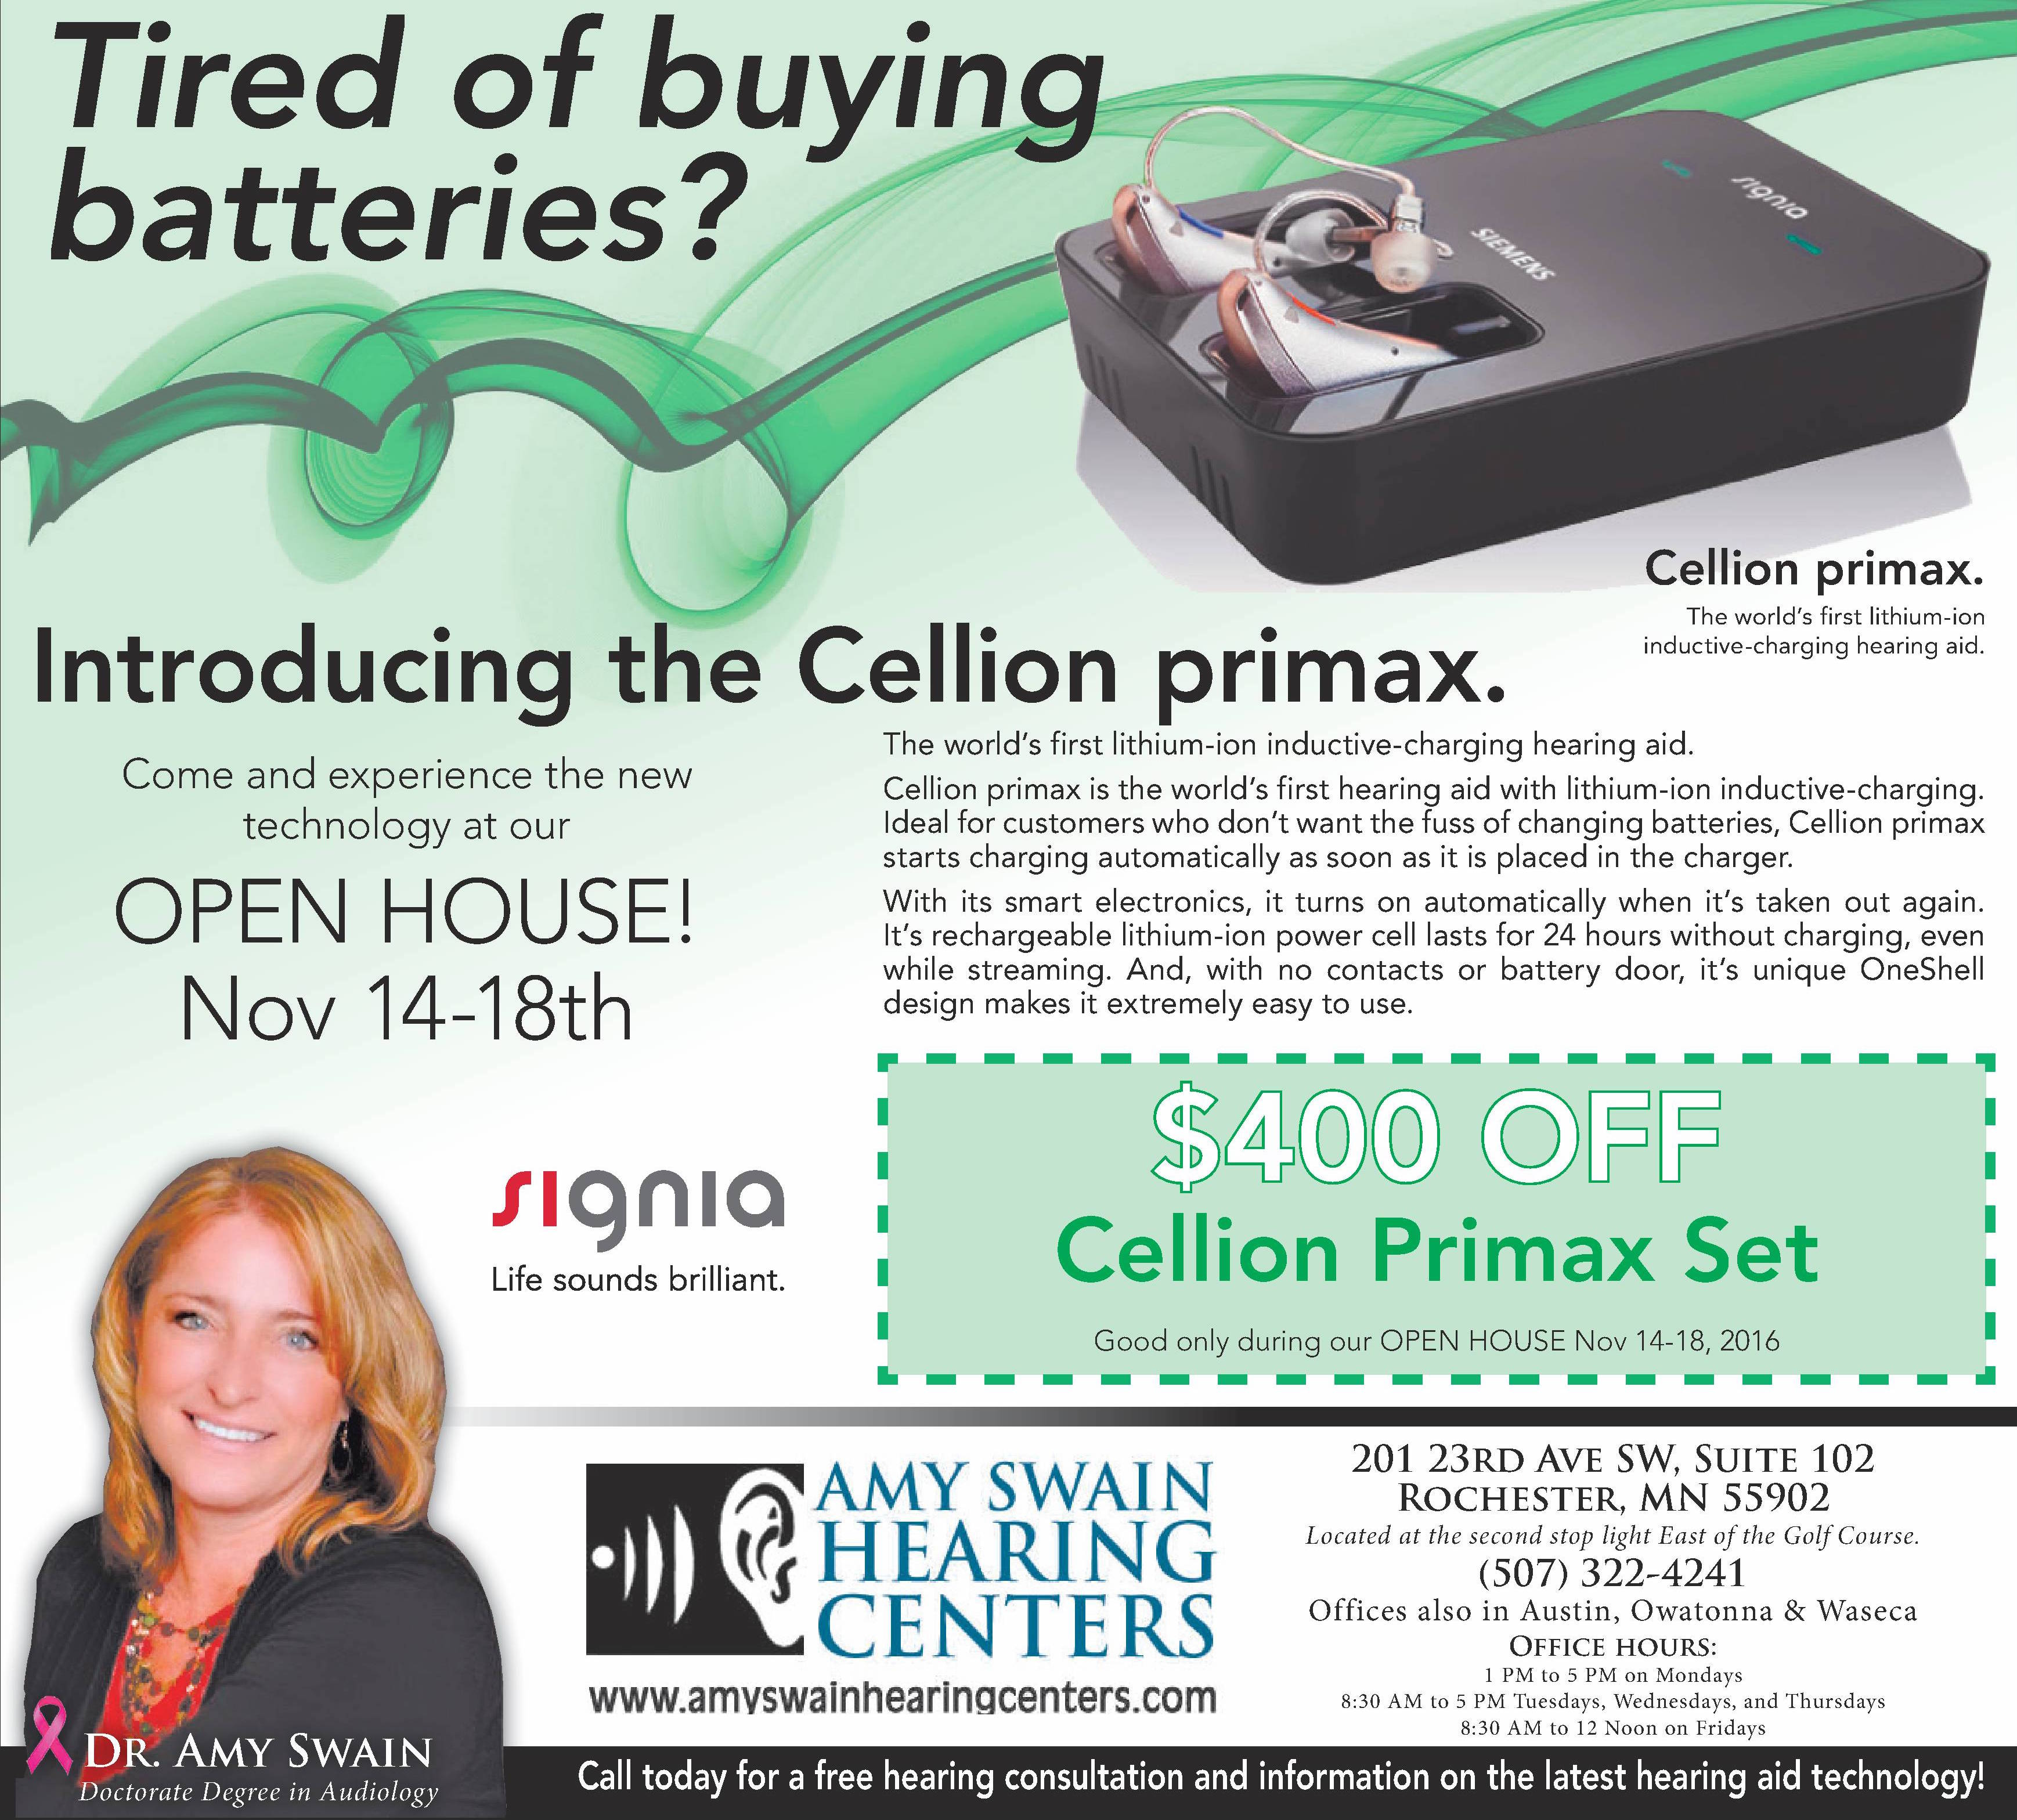 Celion-Primax Hearing Instrument - Amy Swain Hearing Centers